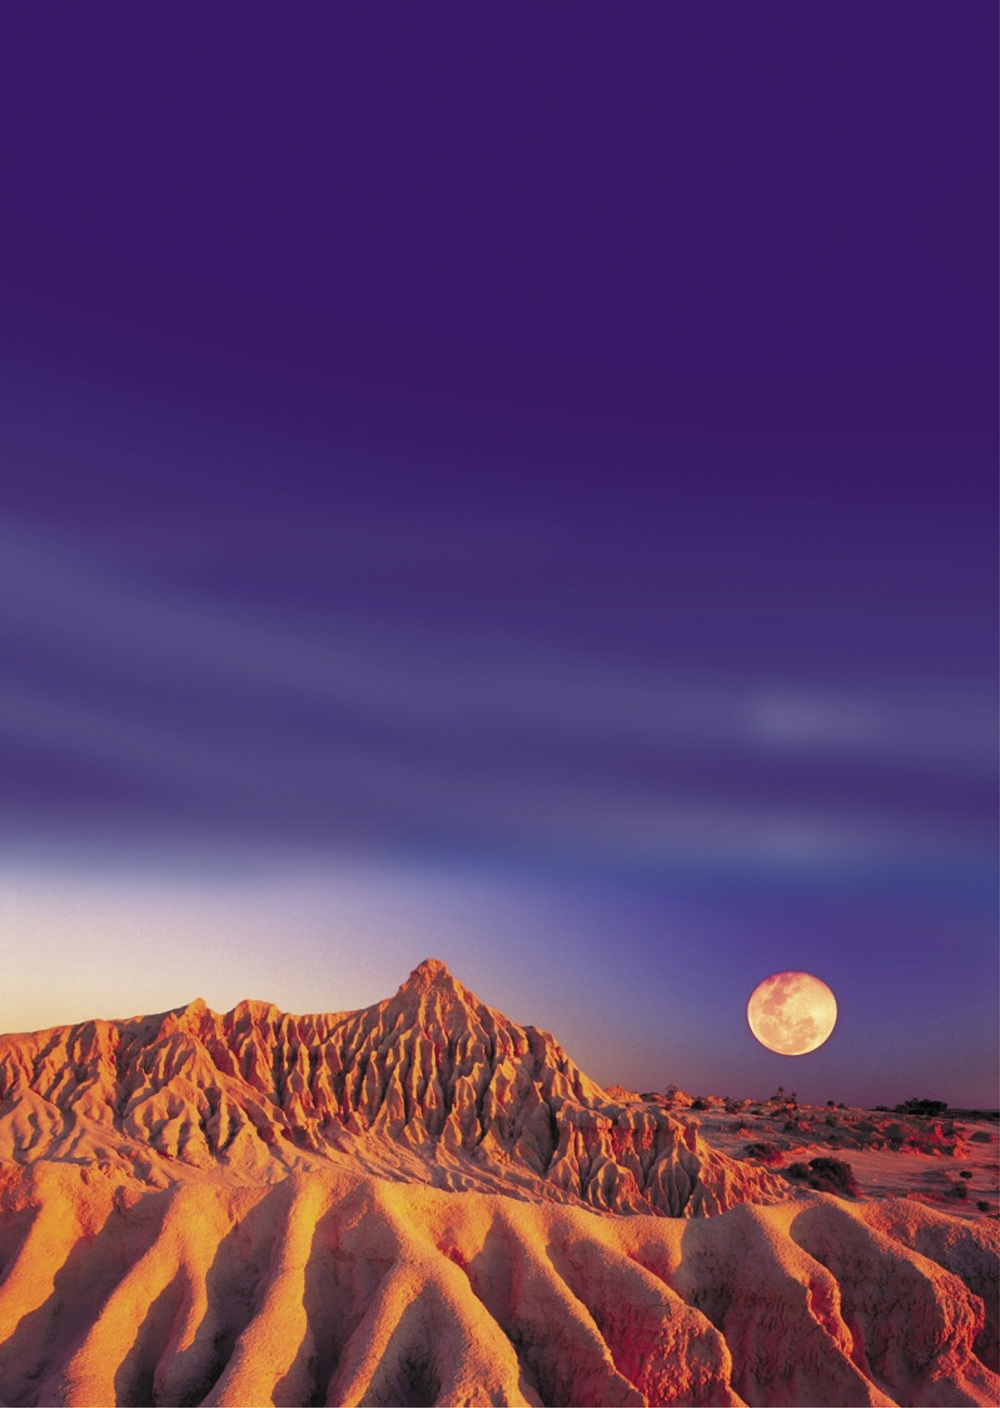 Moon over Mungo copy.jpg